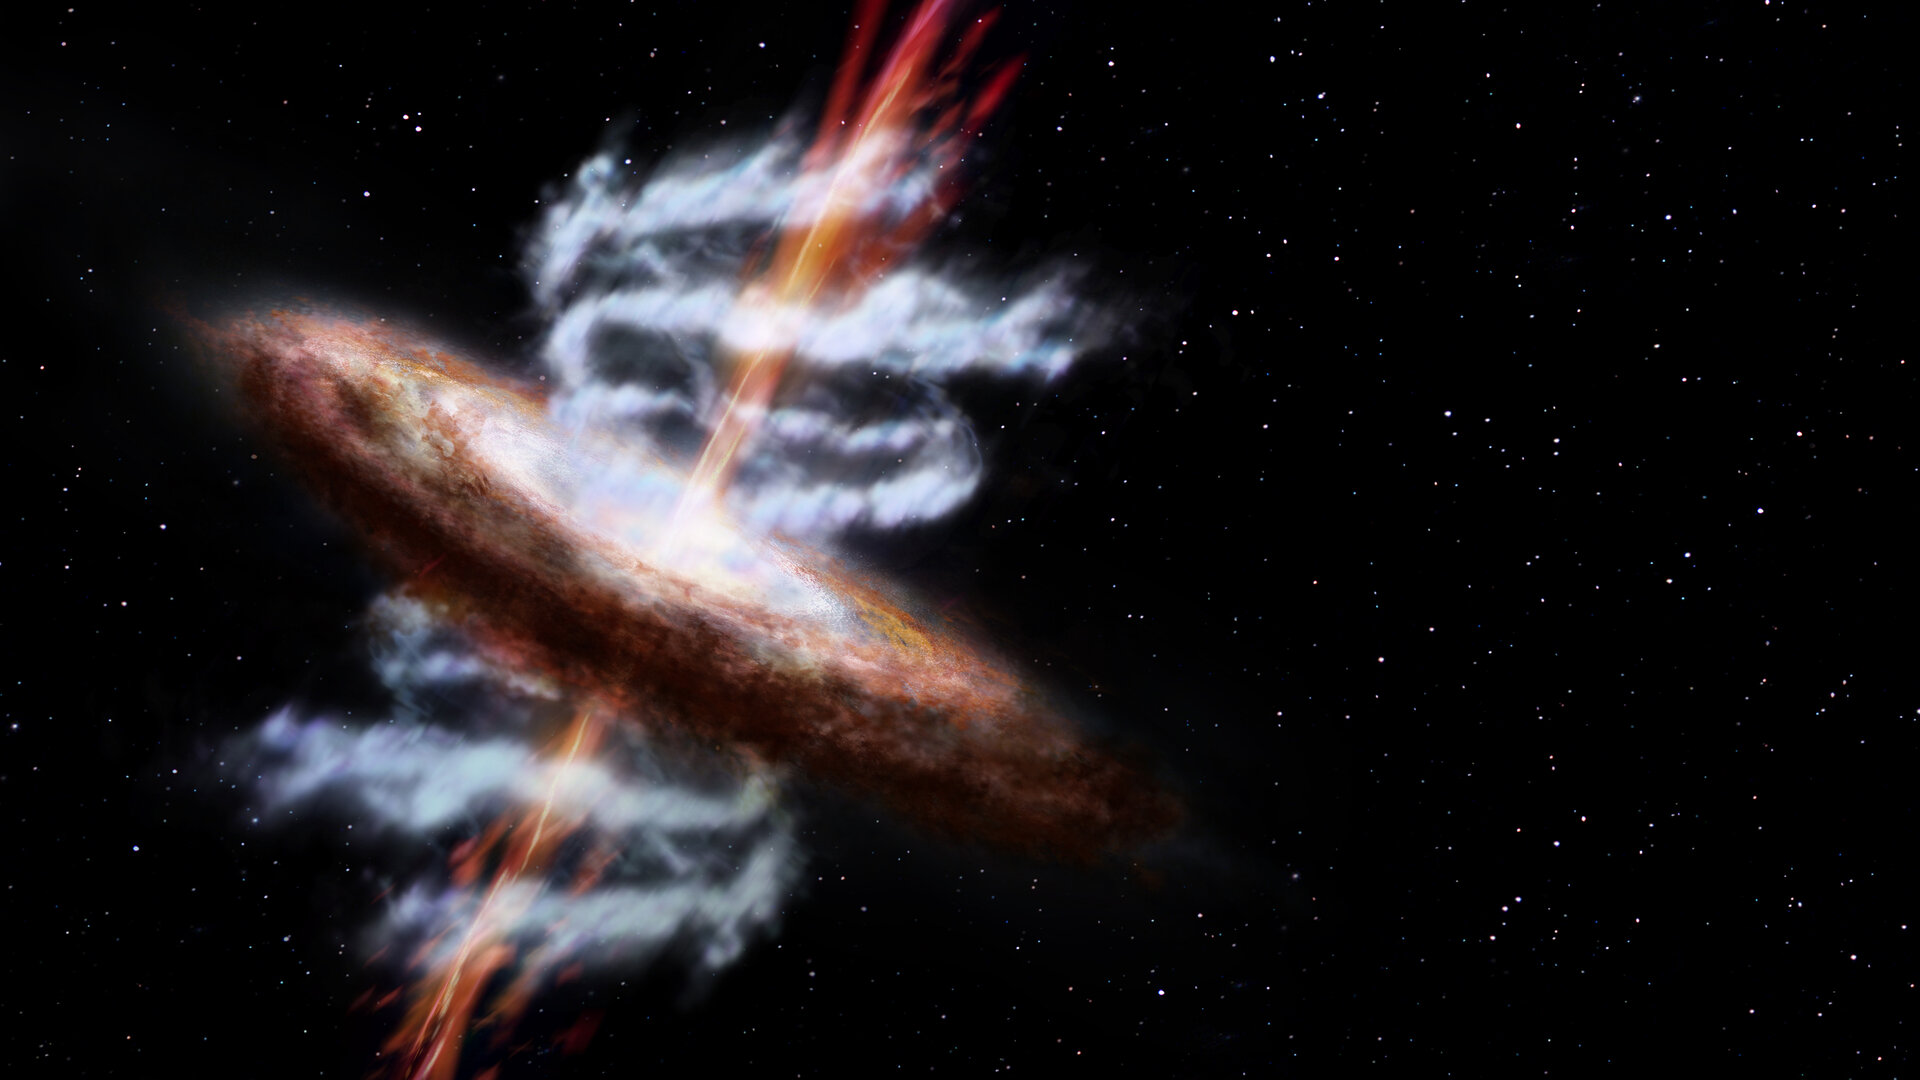 Artist's impression of an active galaxy